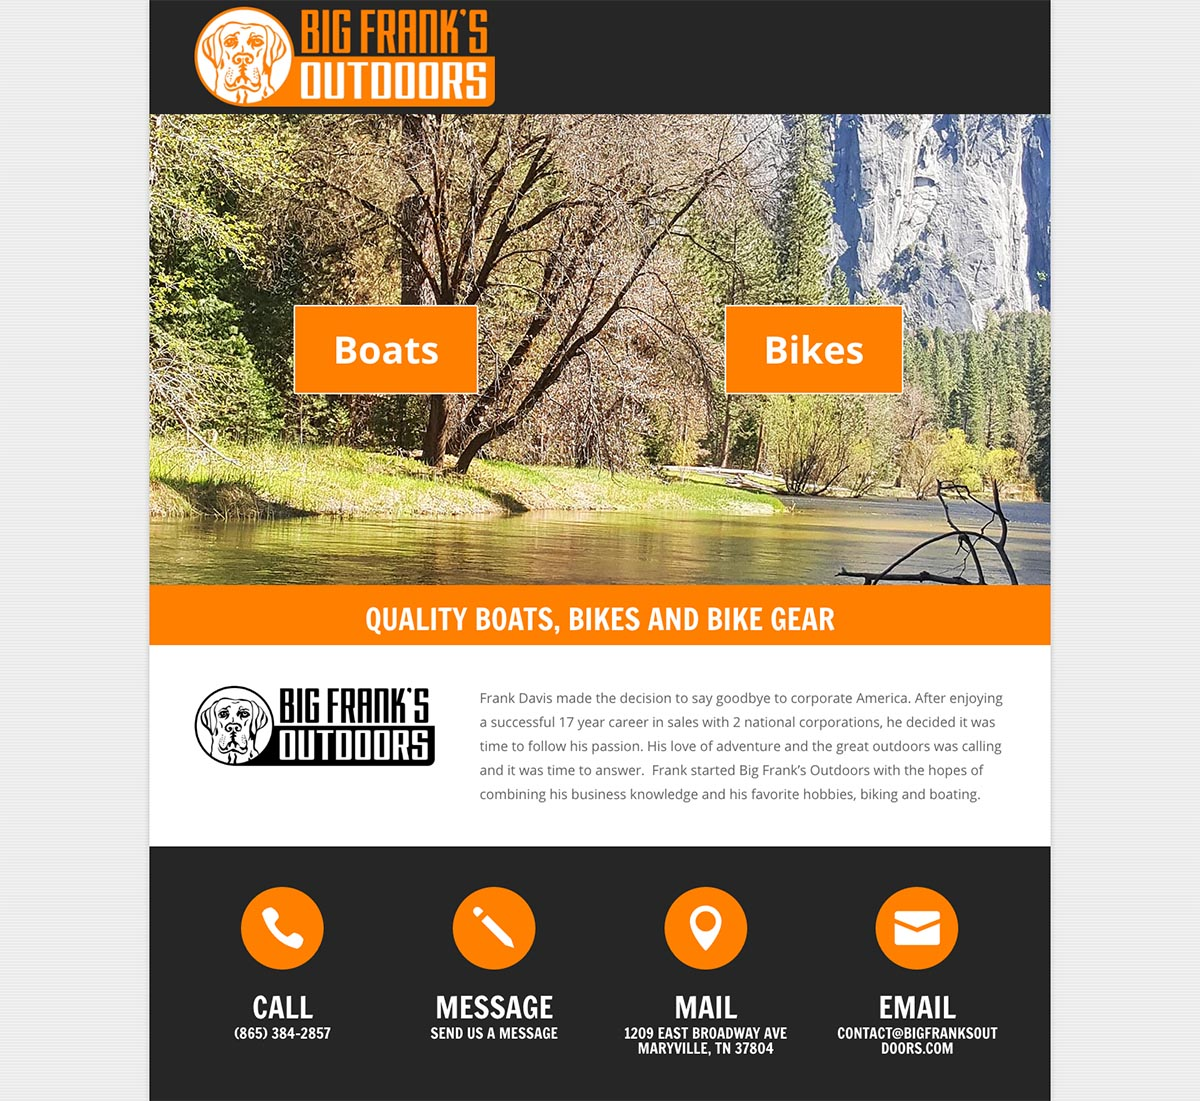 Big Frank's Outdoors Website Design Screenshot